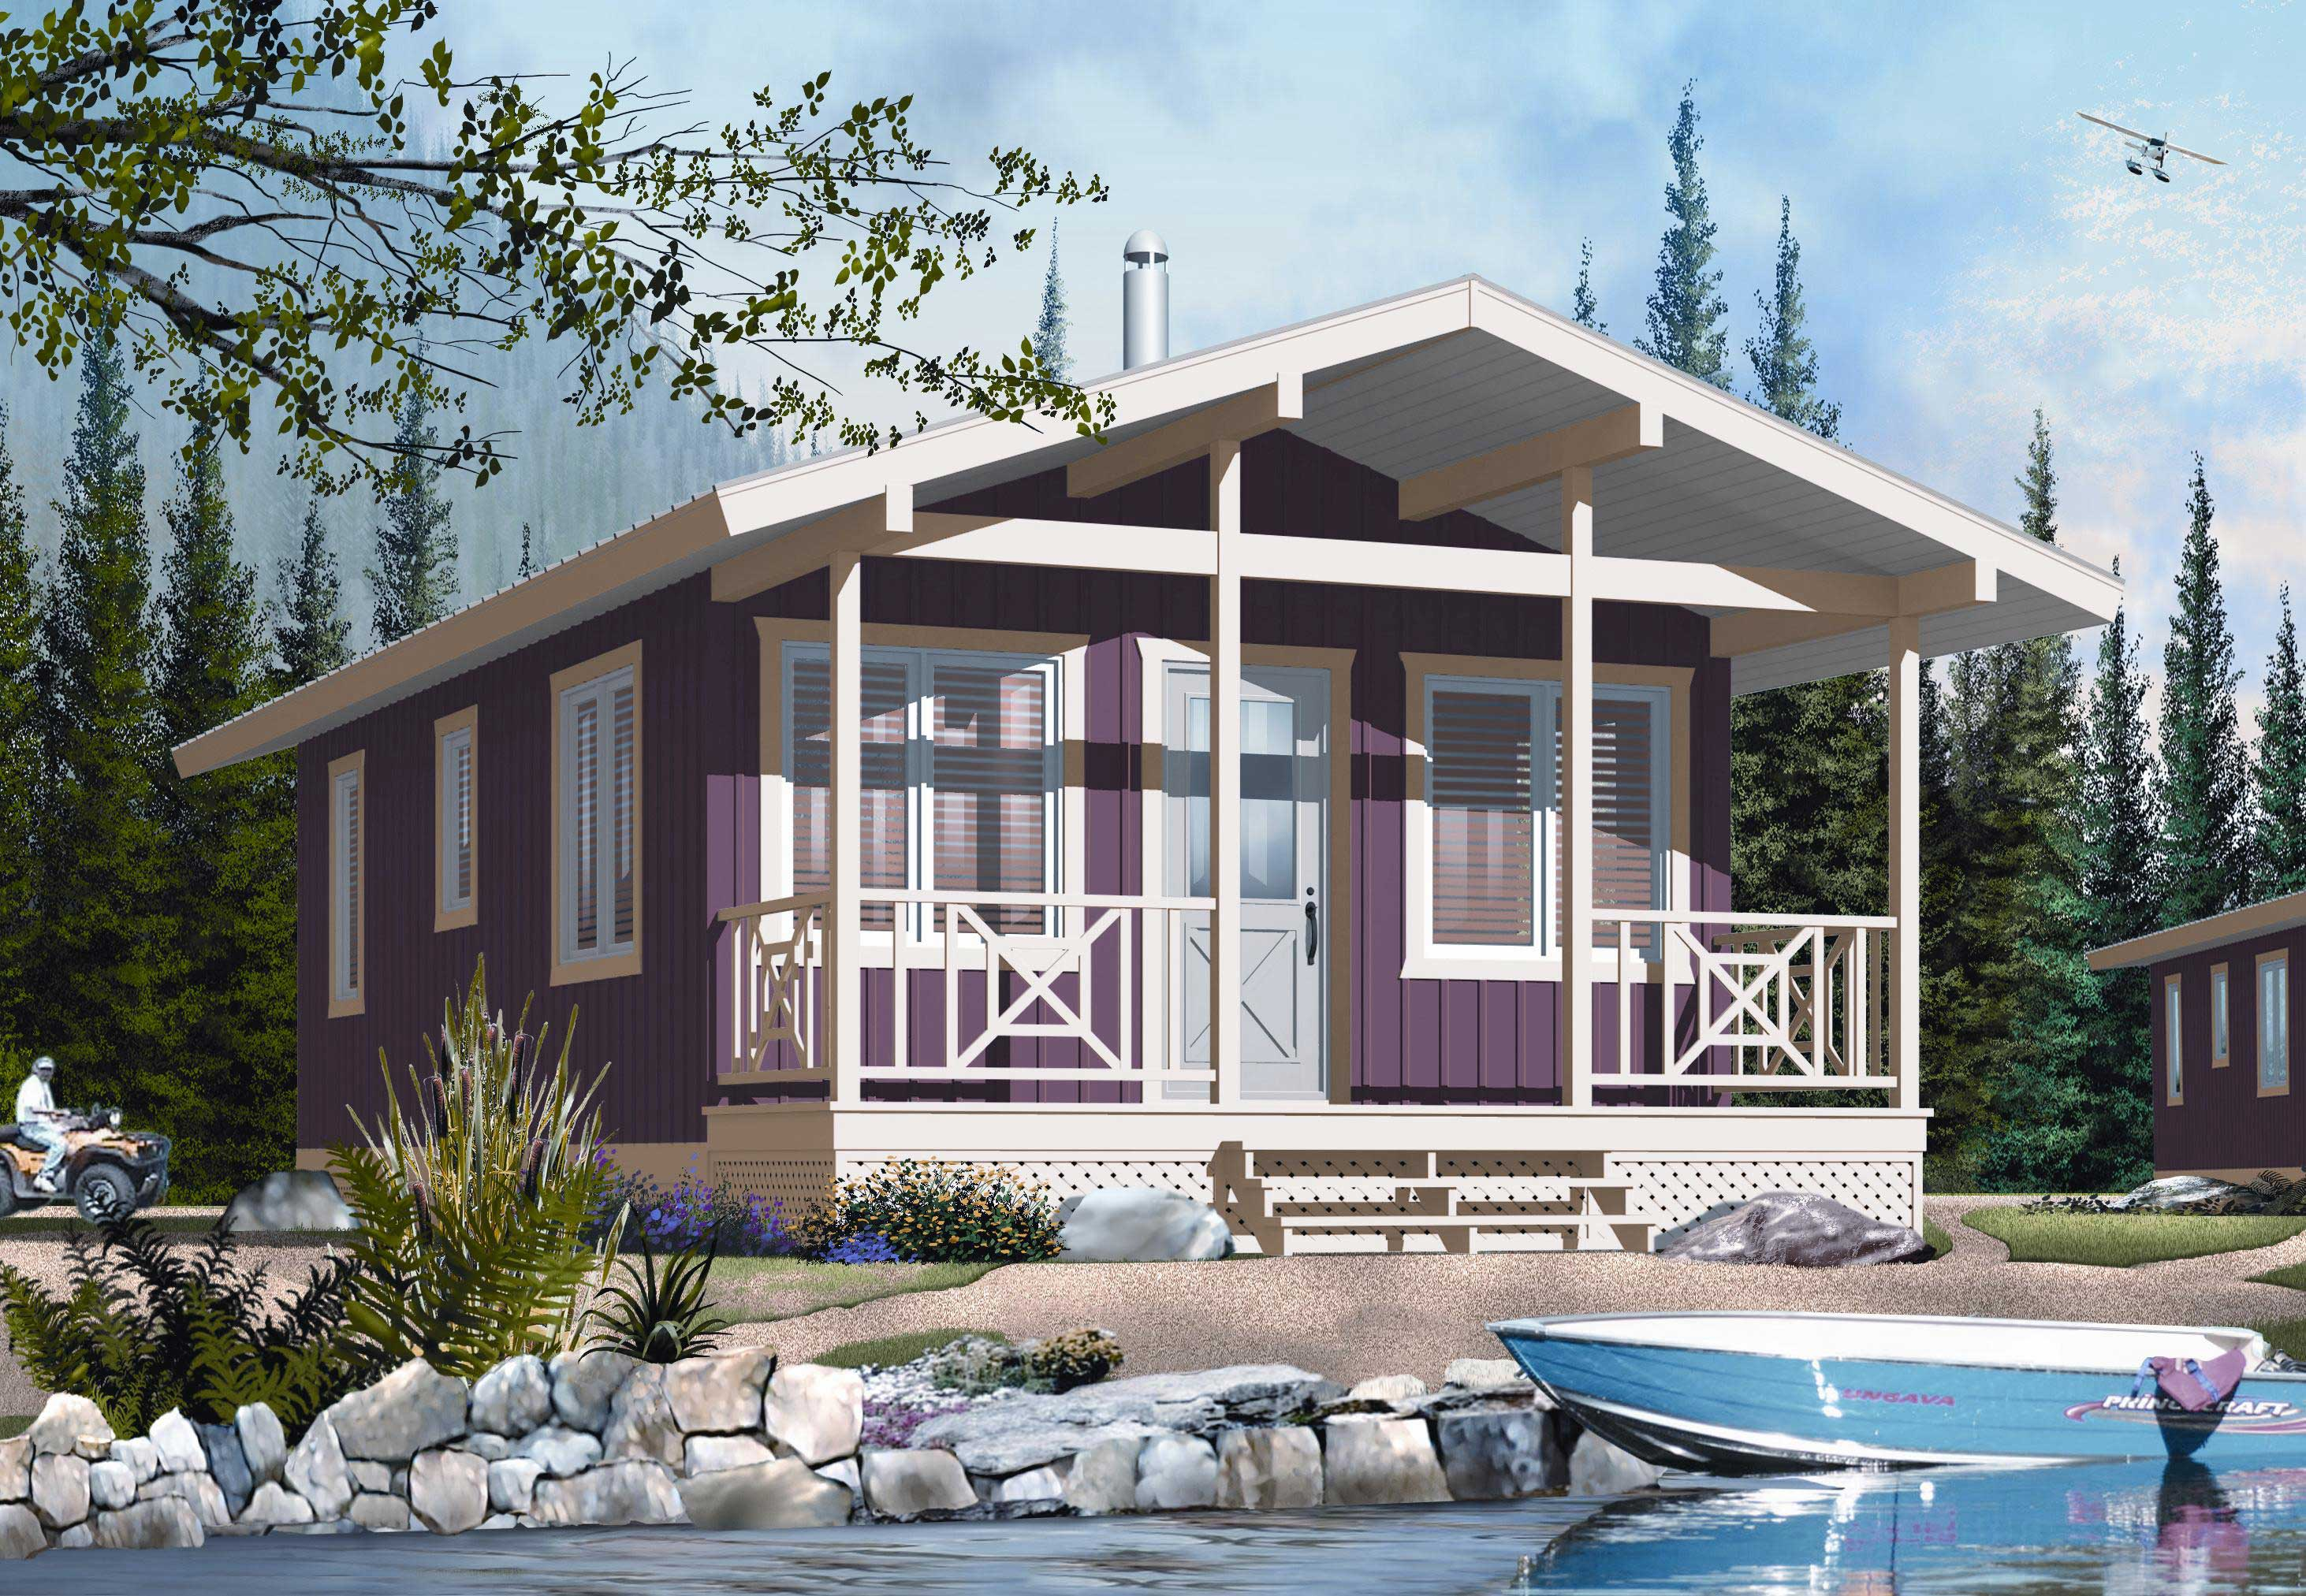 Tiny Home Designs: Vacation Home Design DD-1905